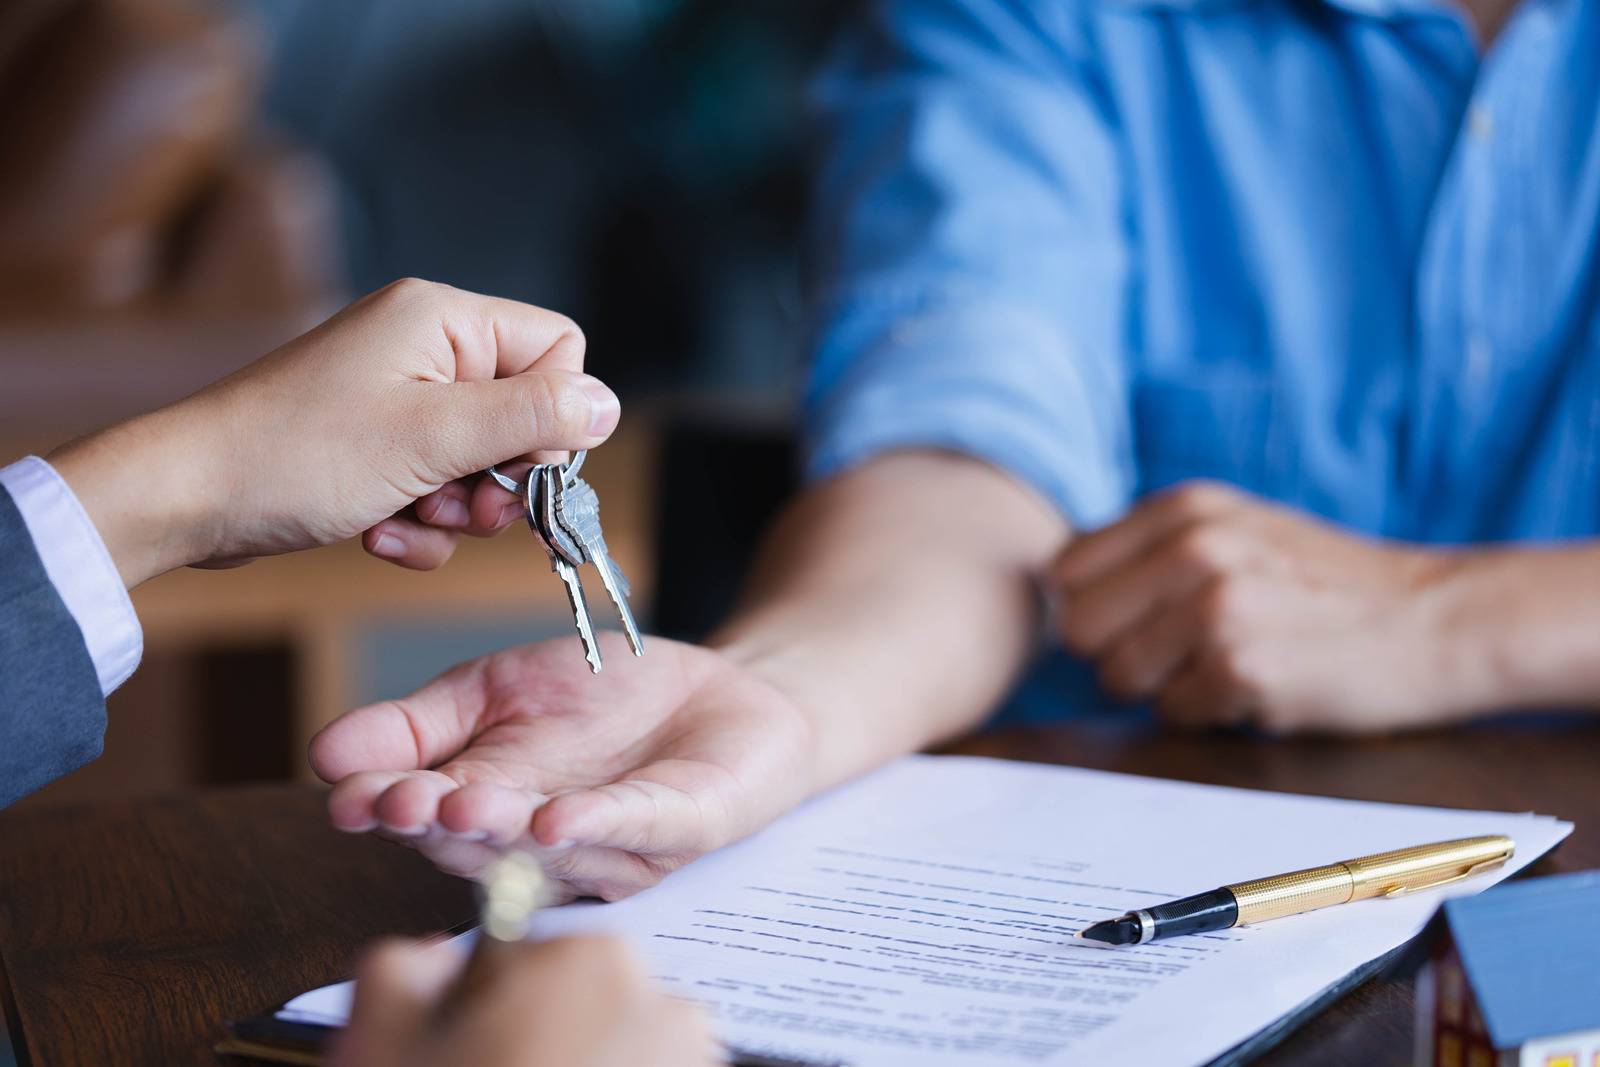 8 Pointers to Prepare Your Home For Selling